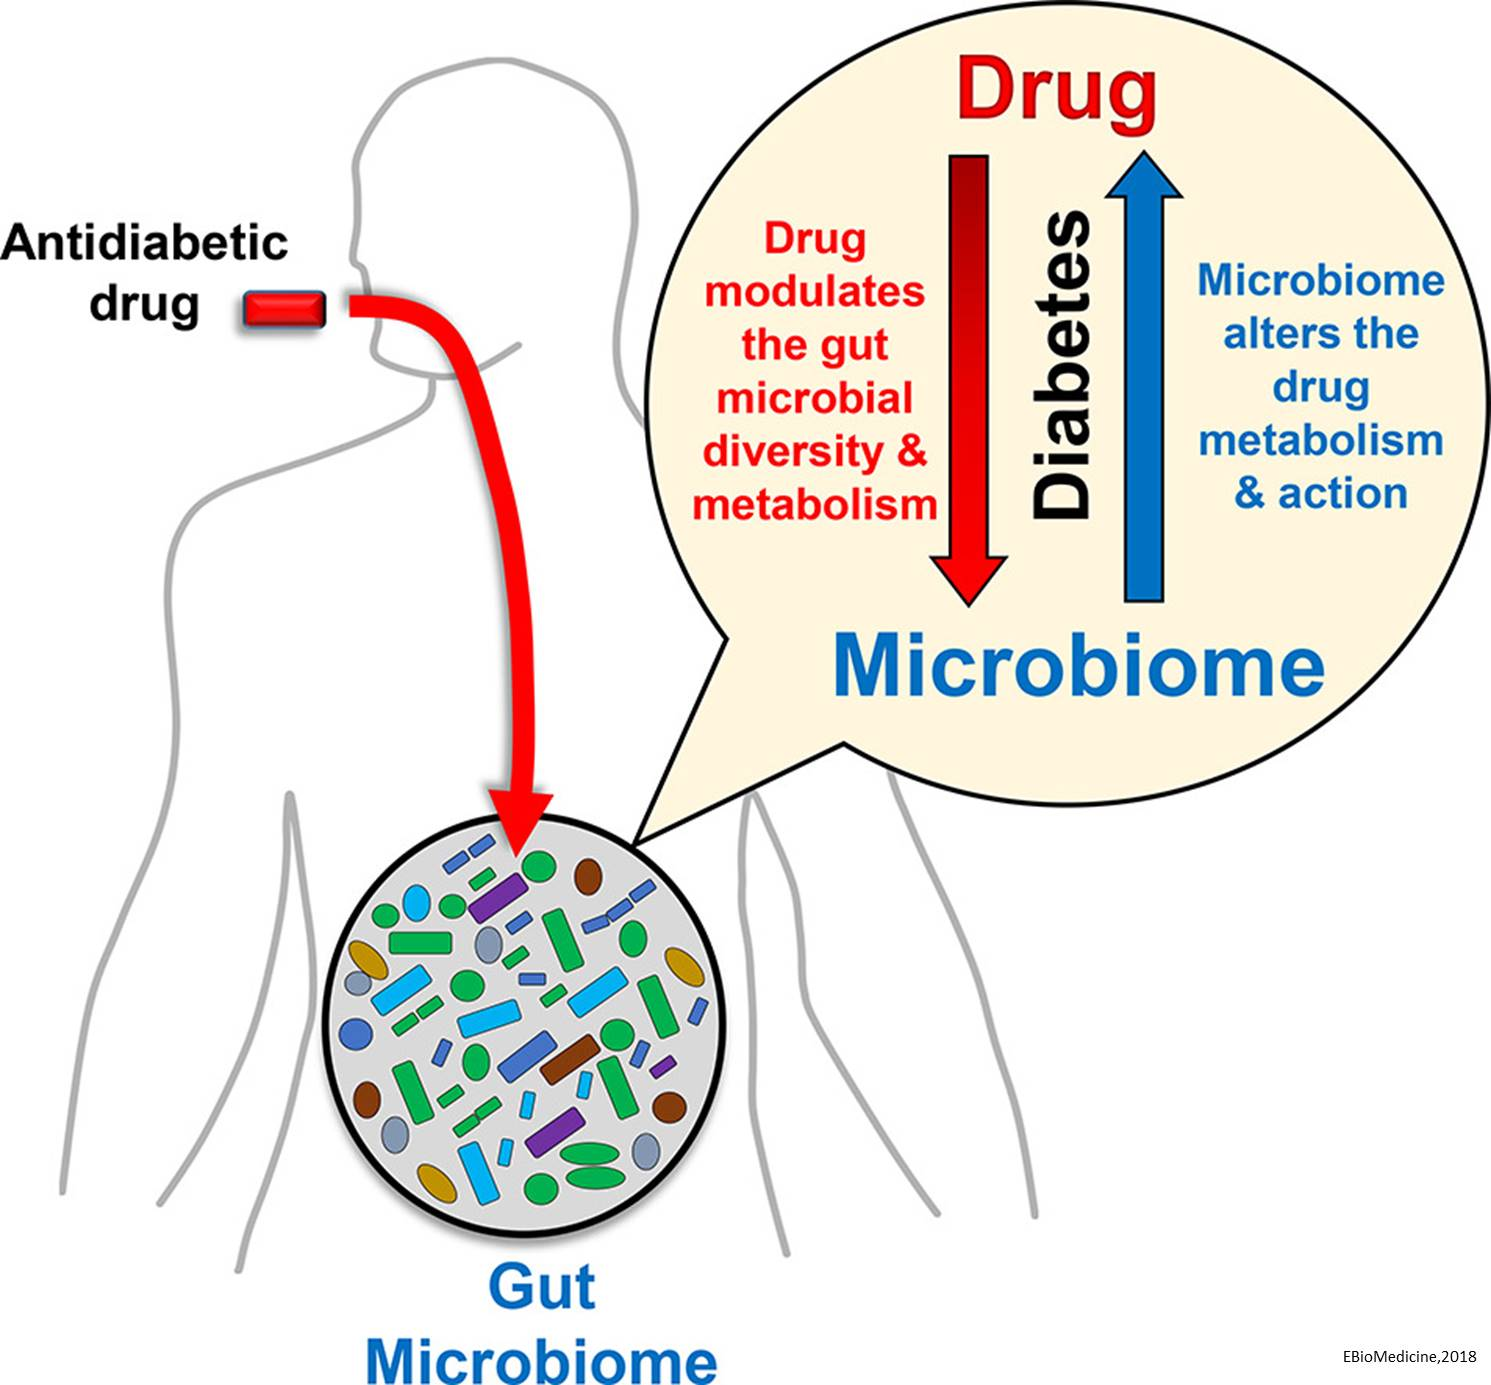 Gut microbiome may affect some anti-diabetes drugs